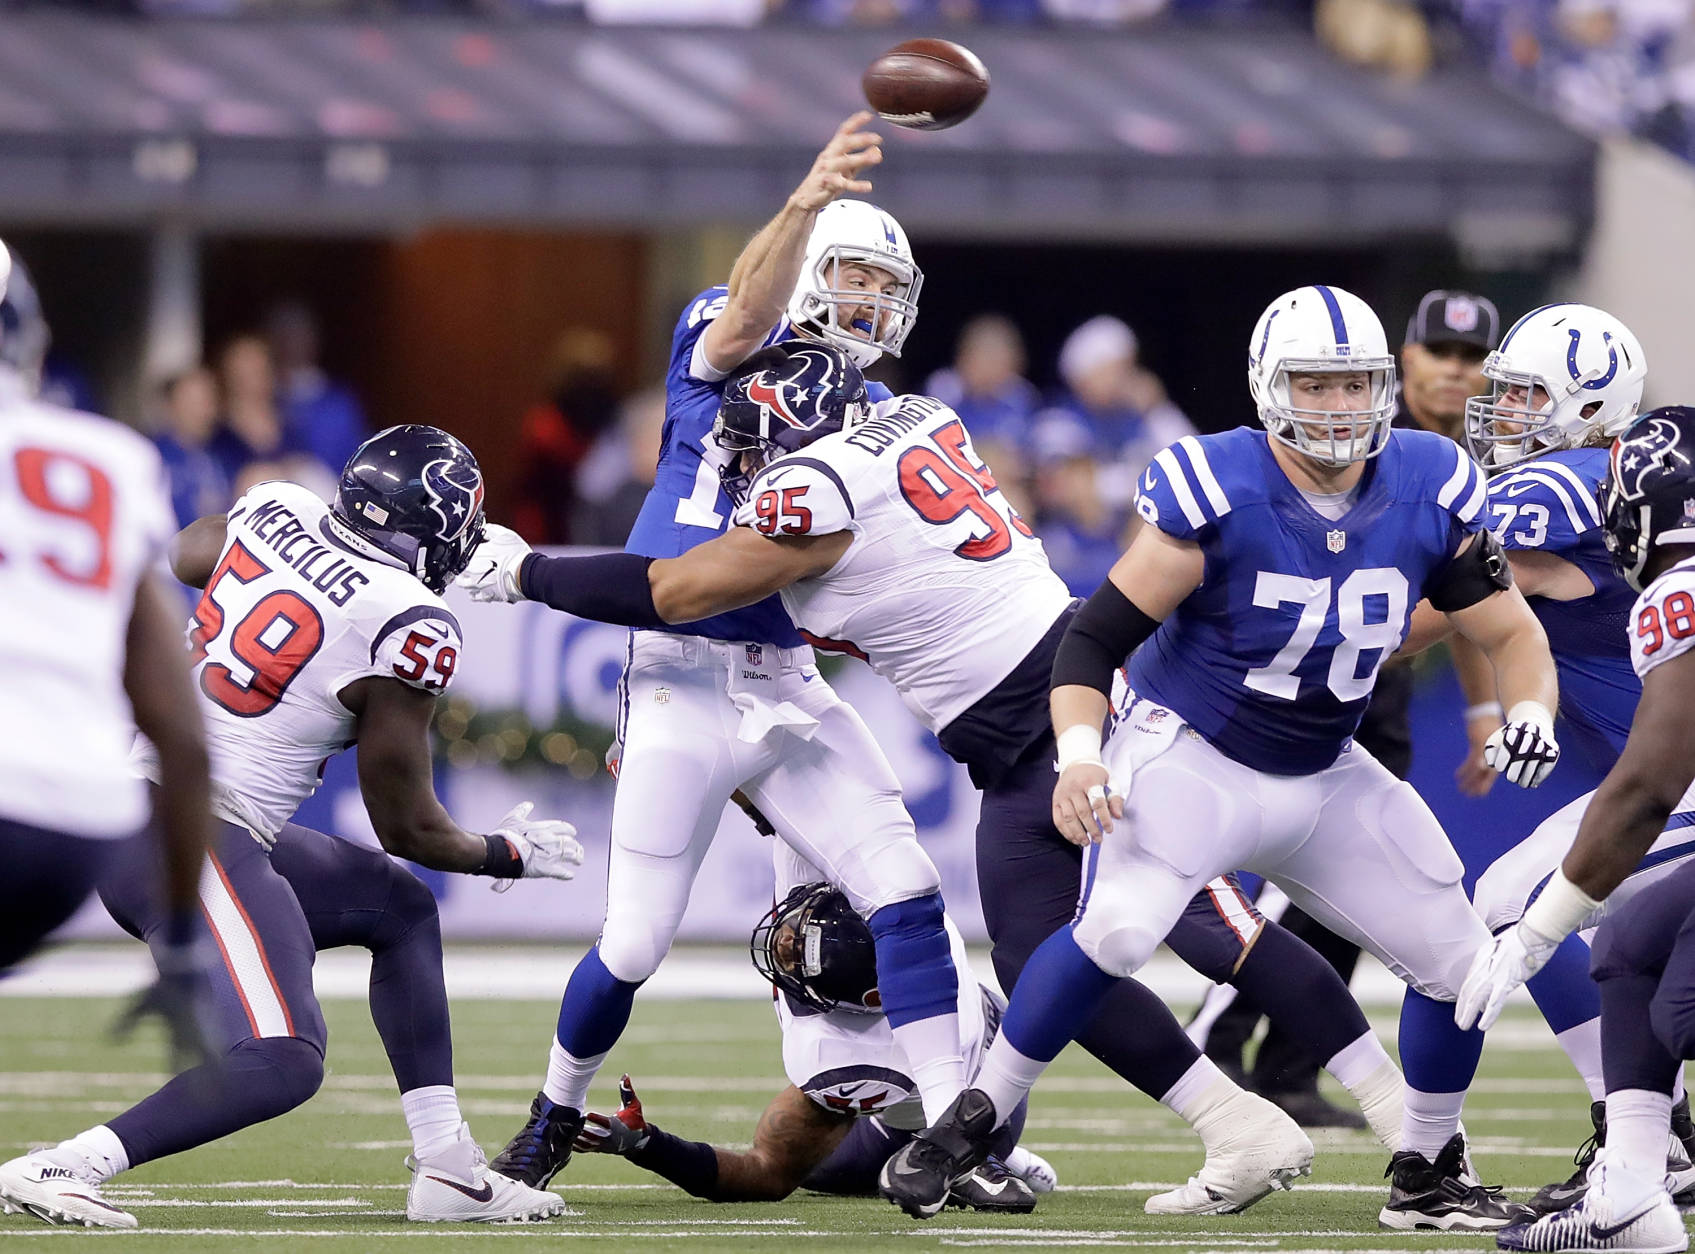 INDIANAPOLIS, IN - DECEMBER 11:  Quarterback Andrew Luck #12 of the Indianapolis Colts is hit by Christian Covington #95 of the Houston Texans during the game at Lucas Oil Stadium on December 11, 2016 in Indianapolis, Indiana.  (Photo by Andy Lyons/Getty Images)